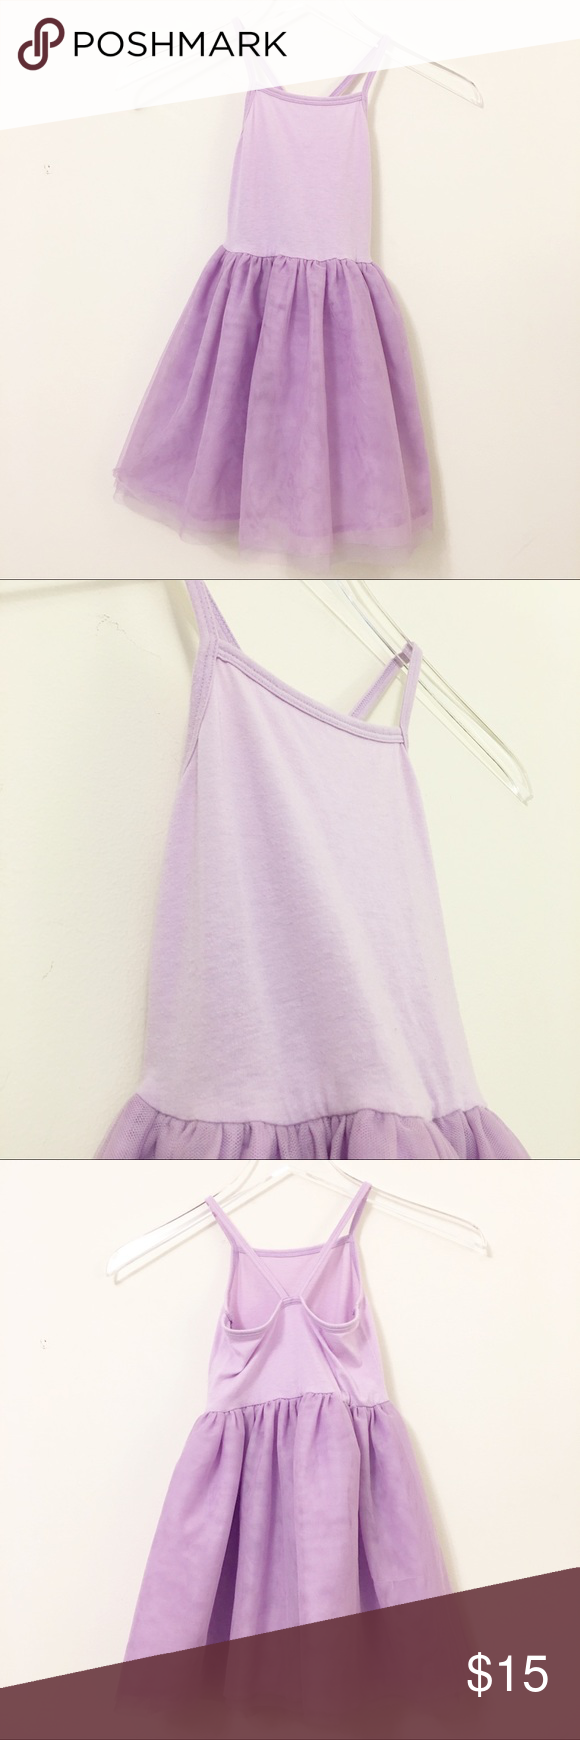 1cce06d37 Old Navy Toddler Girls Layered Tutu Tank Dress 3T Old Navy Toddler Girls  Layered Tutu Tank Dress in Size 3T. Skirt is lined. Has minimal signs of  wear from ...